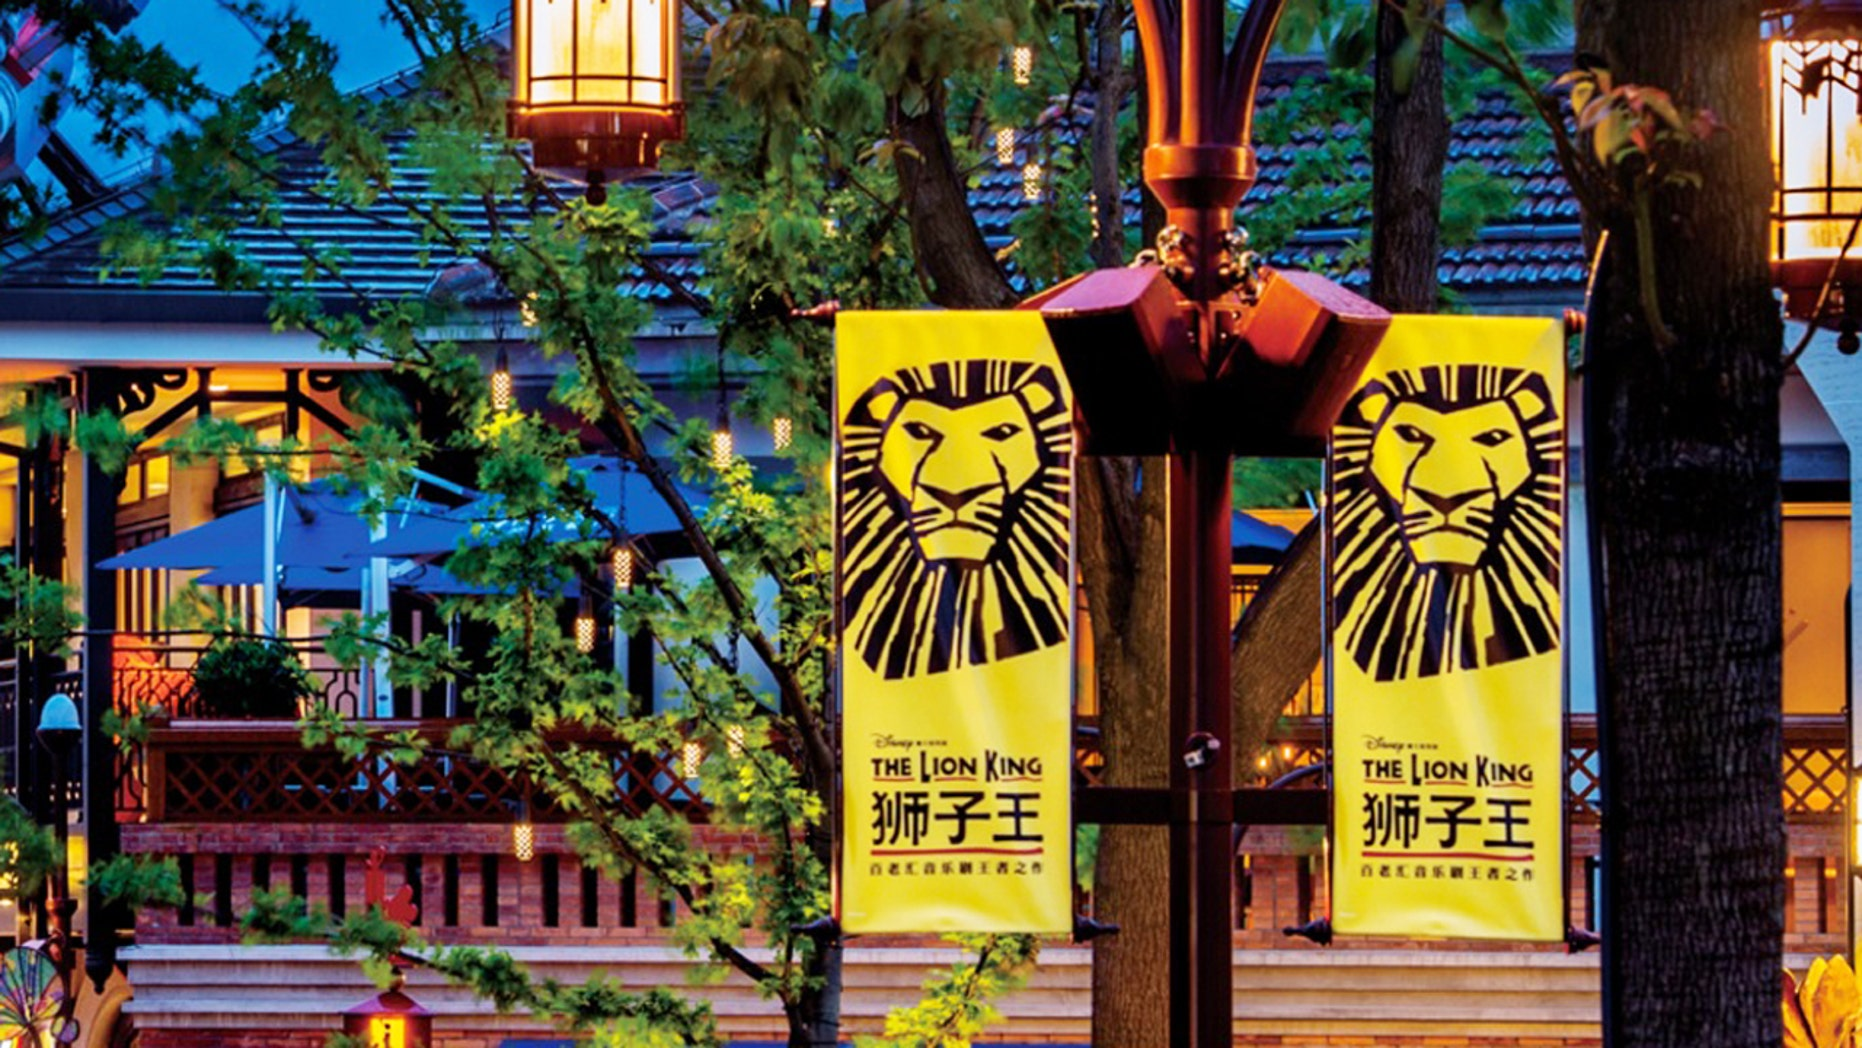 """A live-action stage production of the """"The Lion King"""" will be one of the park's signature attractions."""